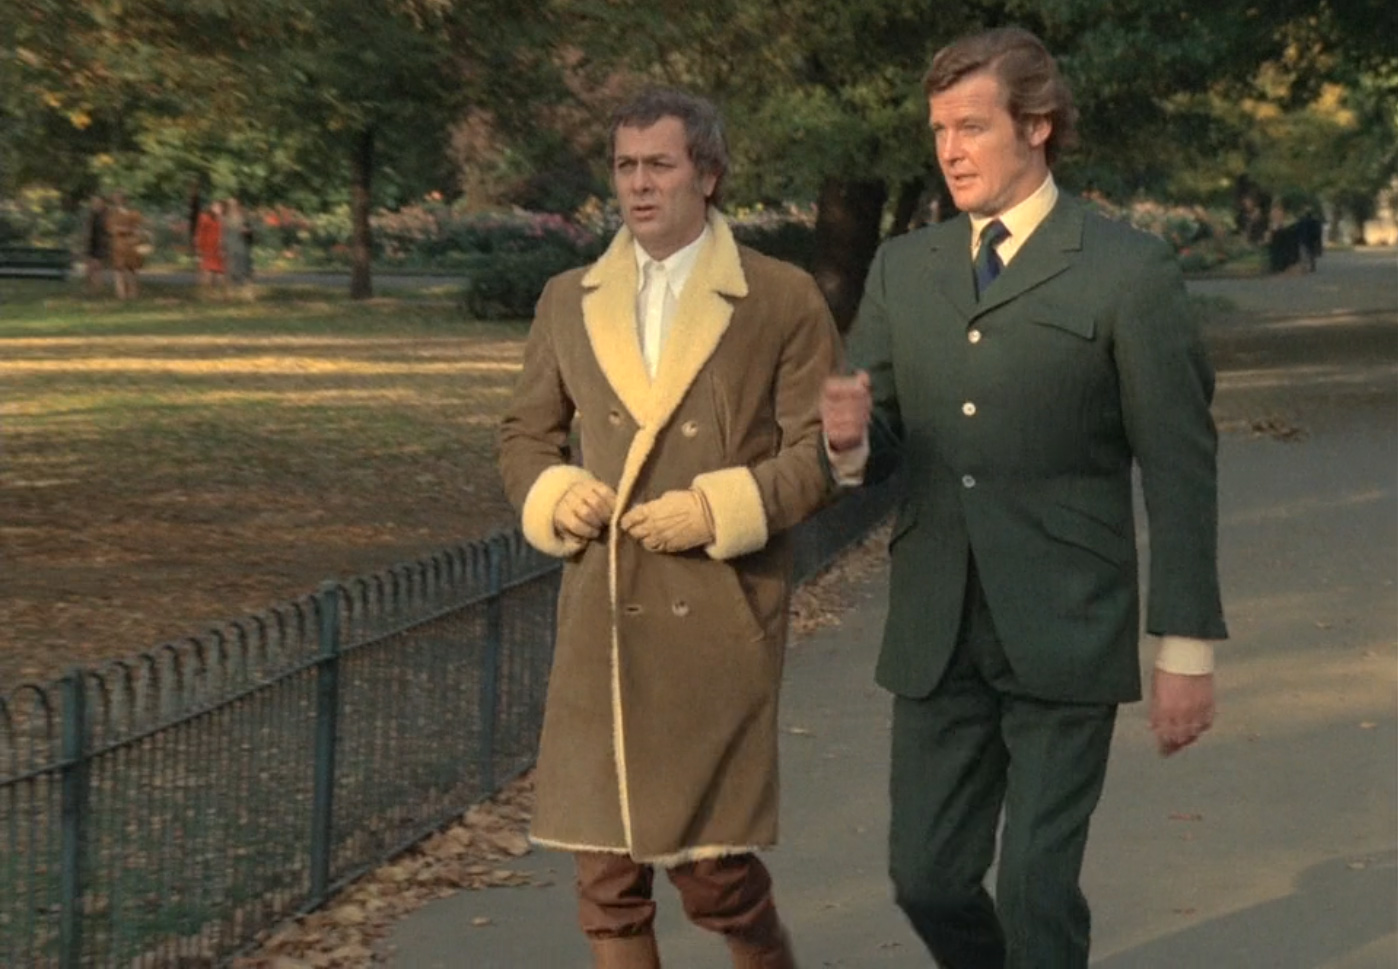 persuaders-green-high-button-three-suit.jpg